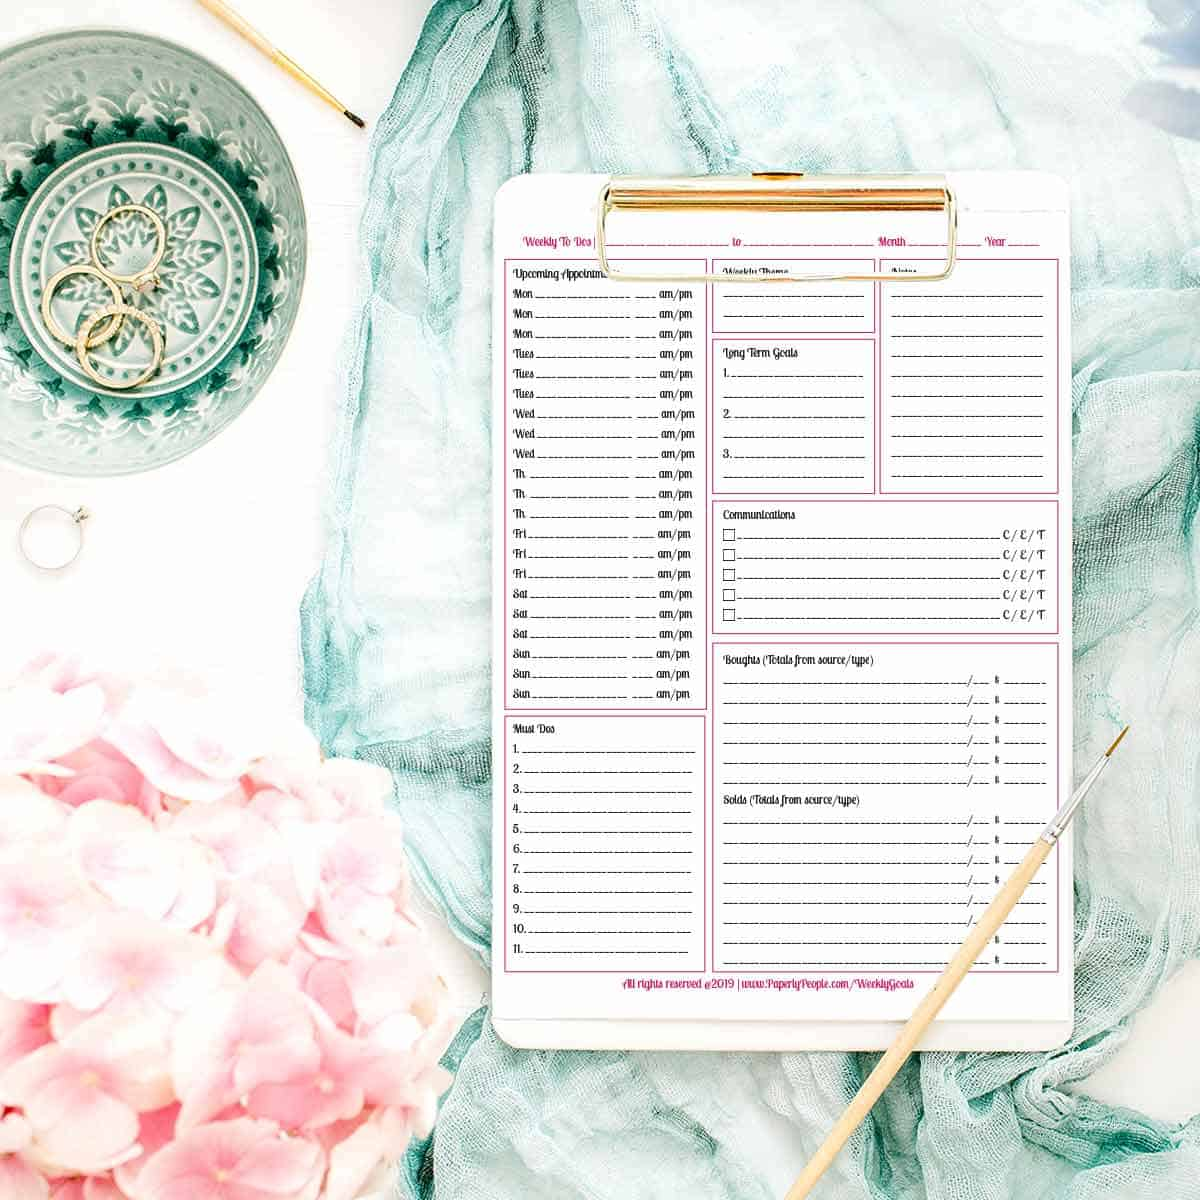 Weekly Planner Pages and Goals - Printable planner pages for Staples ARC Notebook or 3 Ring Binders.